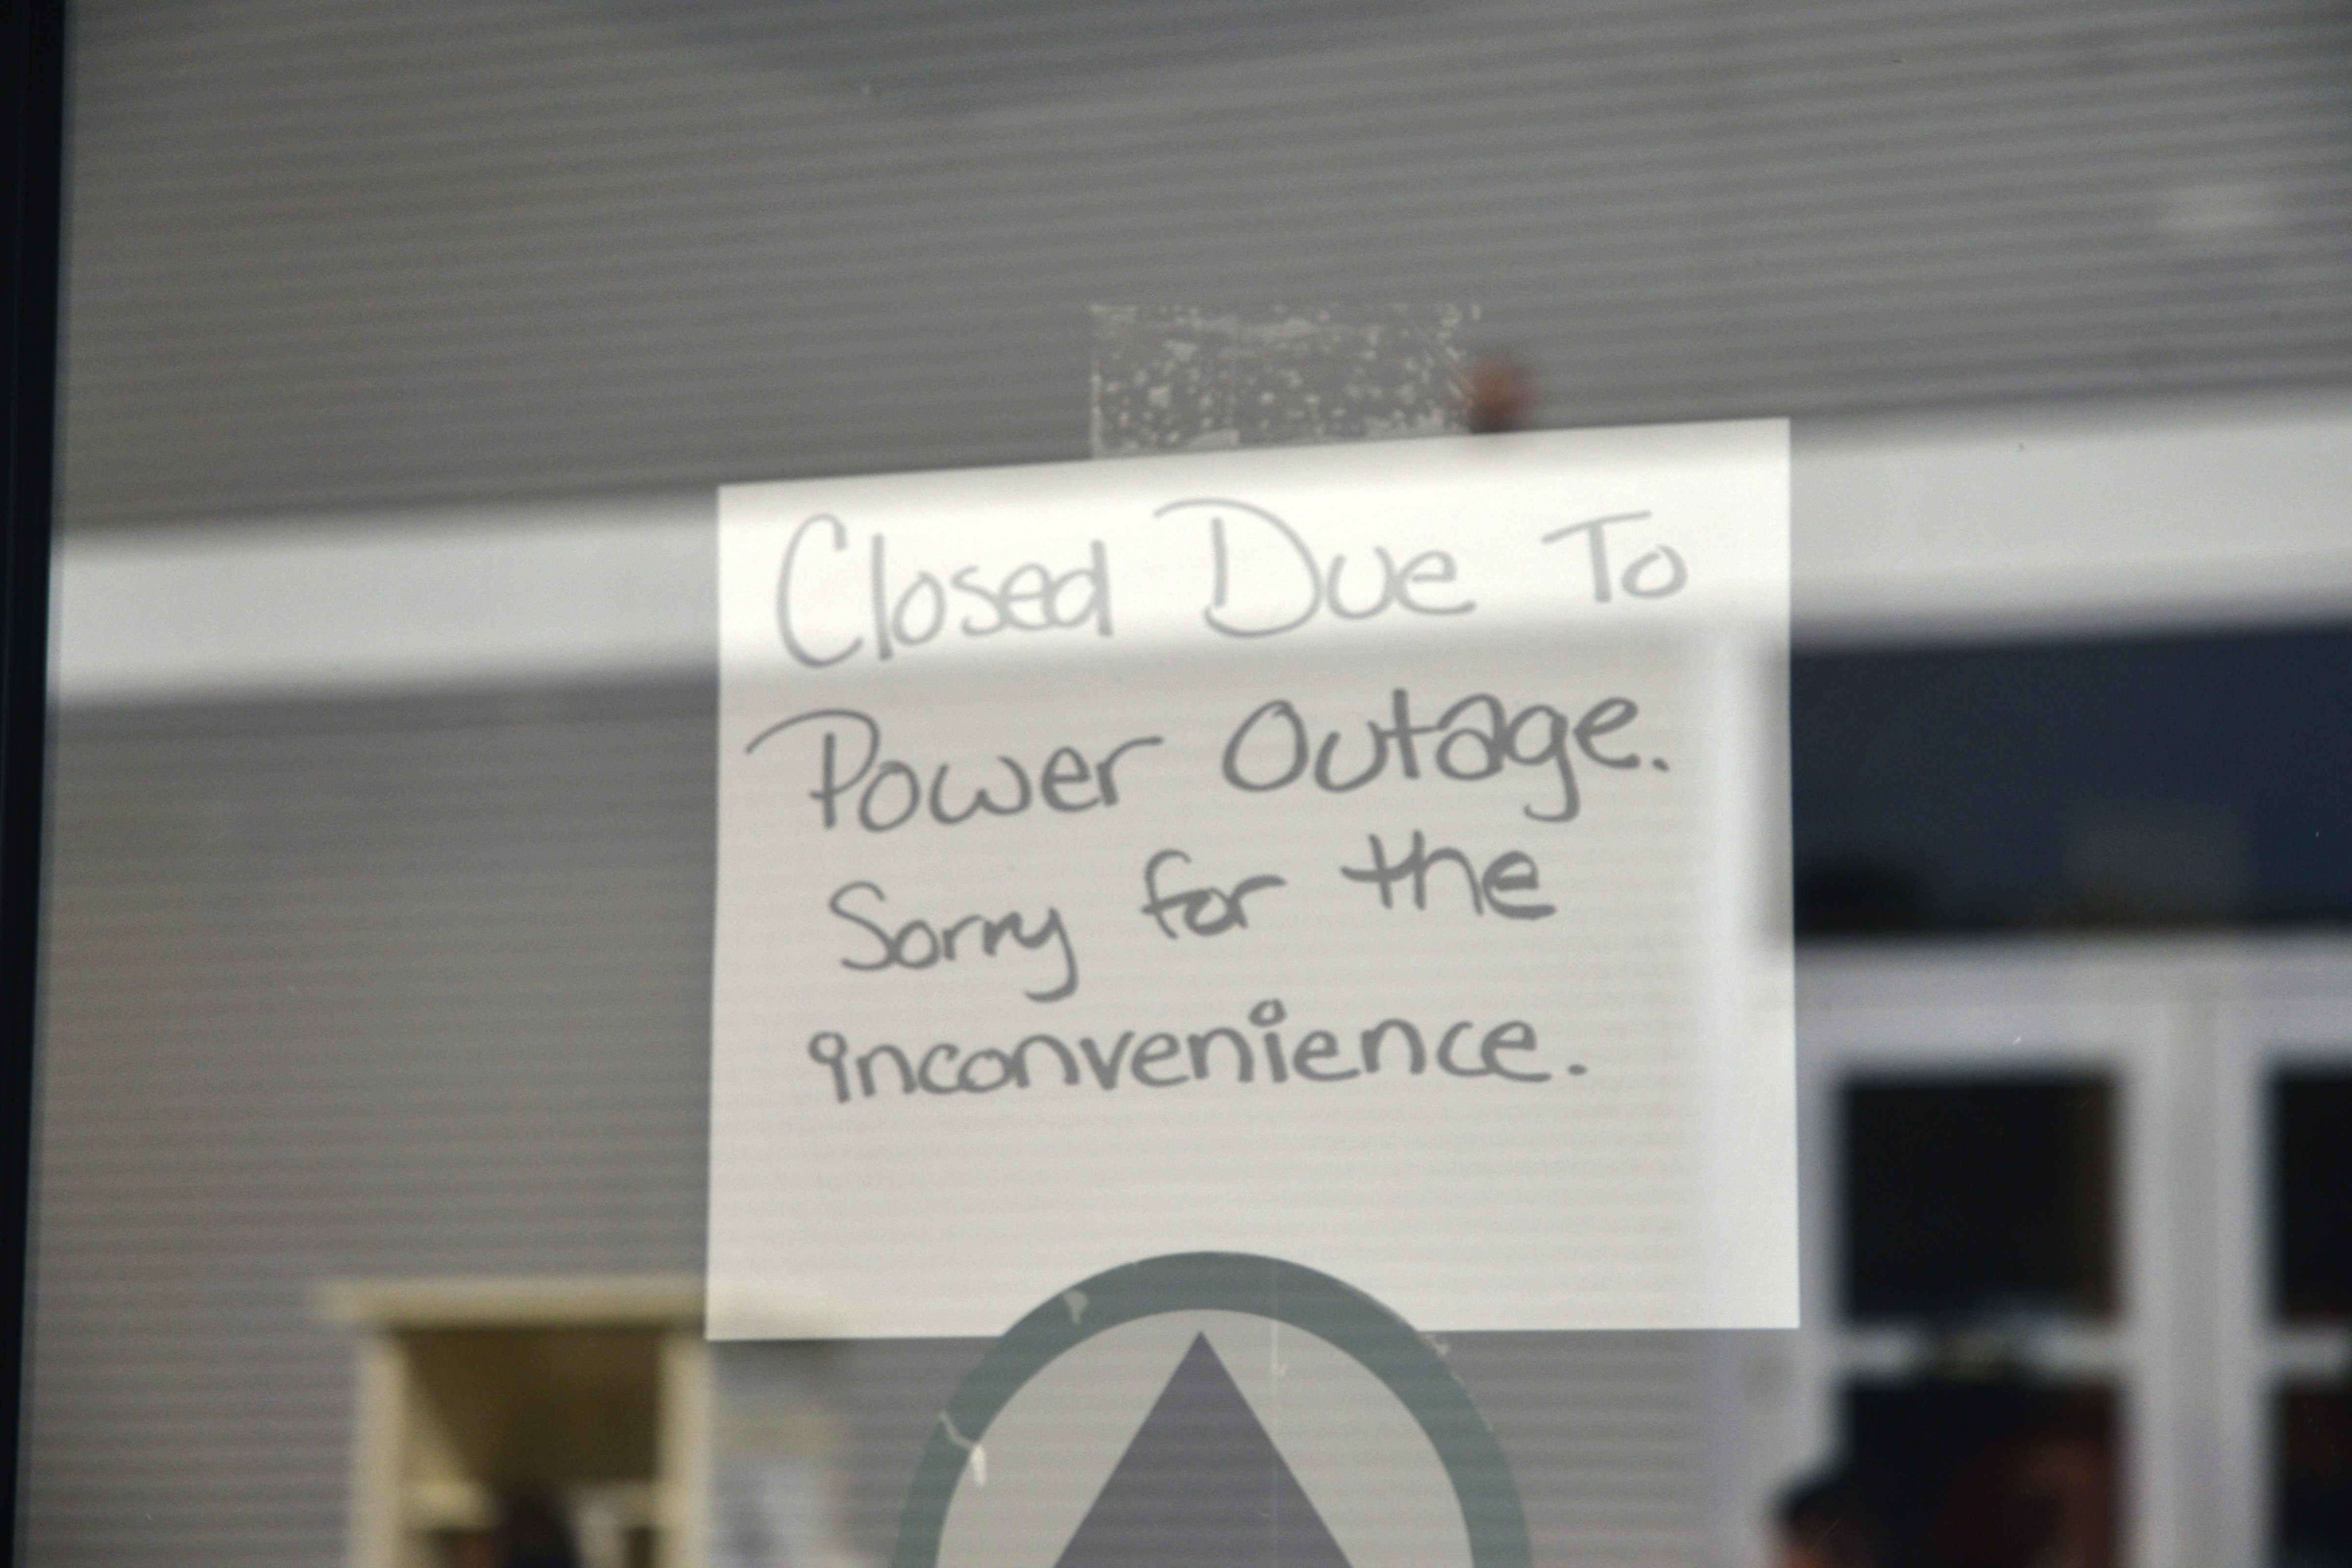 The bookstore closes down due to the power outage at Palomar Nov. 10. Photo: Casey Cousins/The Telescope